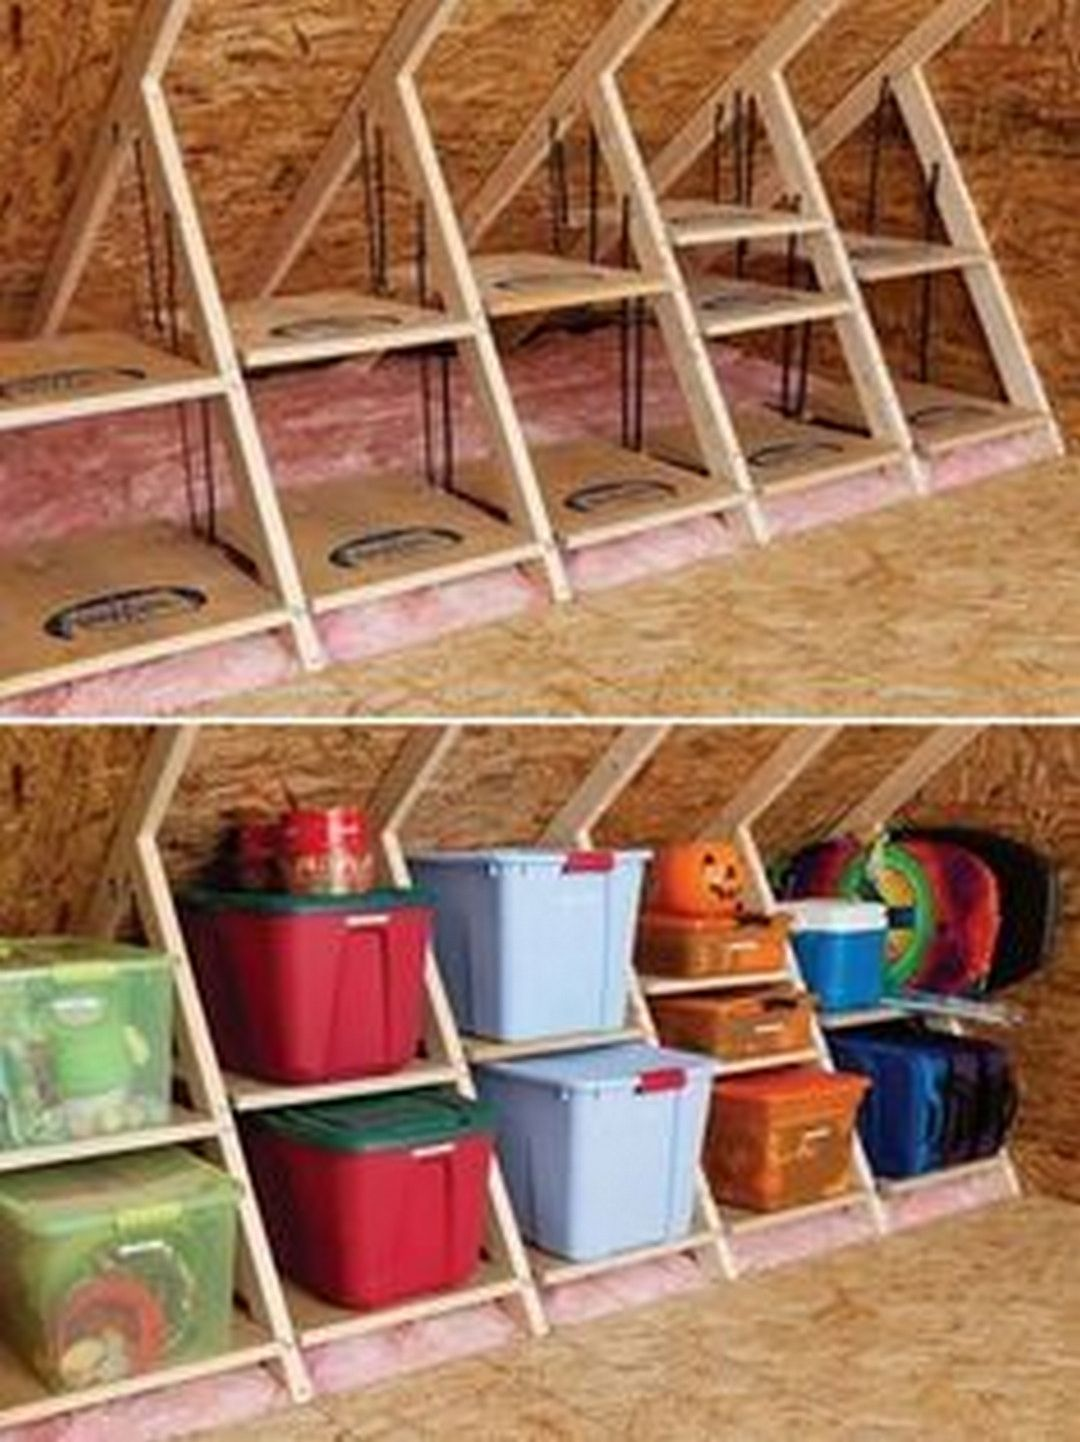 10 Creative Toy Storage Tips for Your Kids | wood working ...